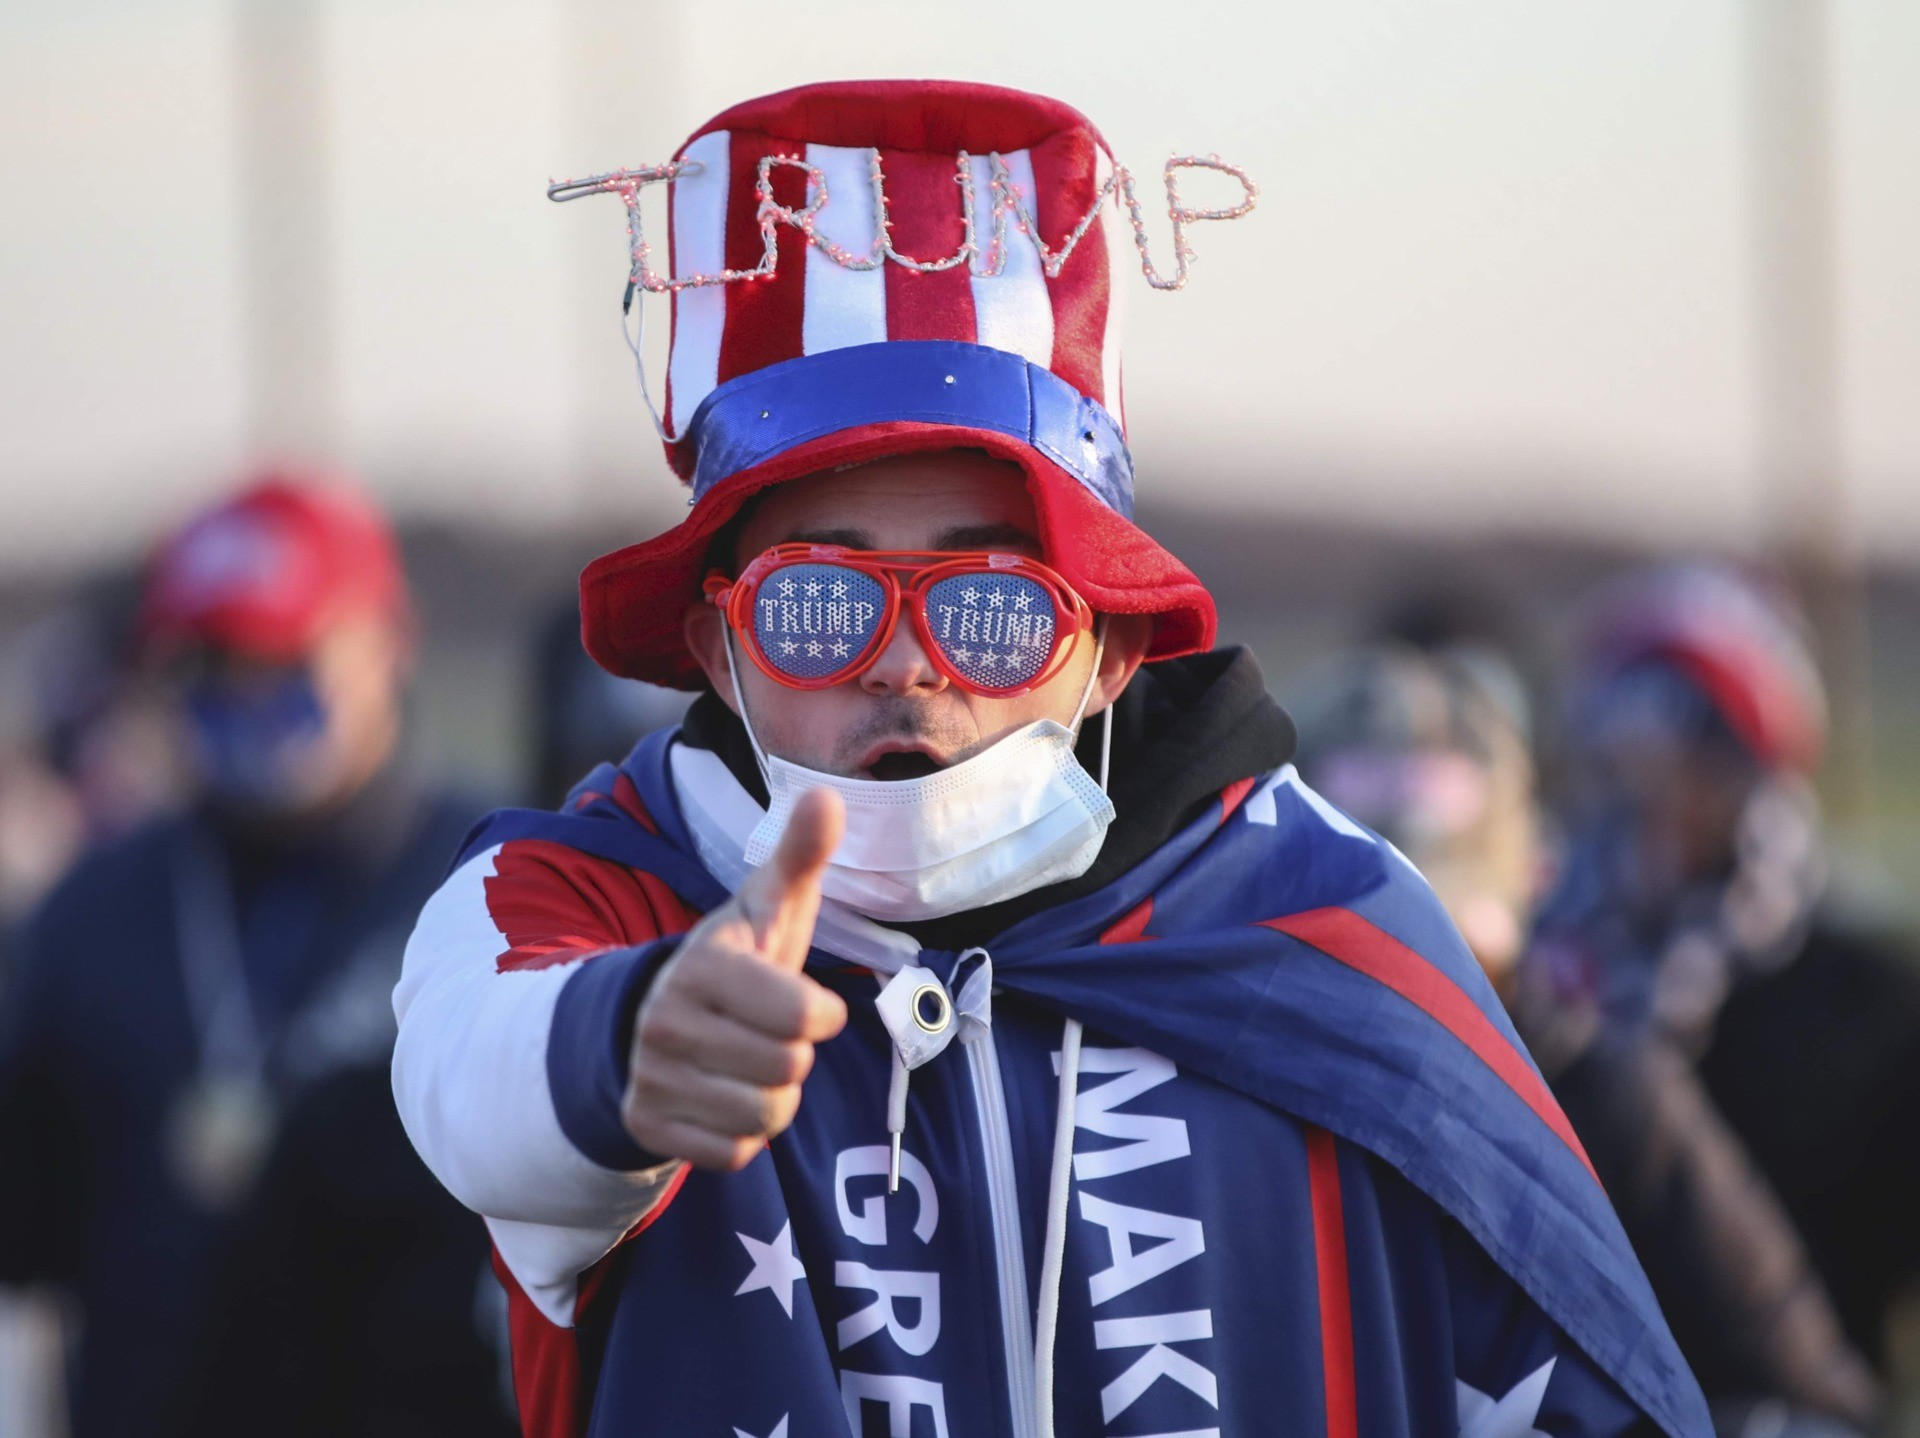 Trump dude Grand Rapids (Kamil Krzaczynski / Getty)